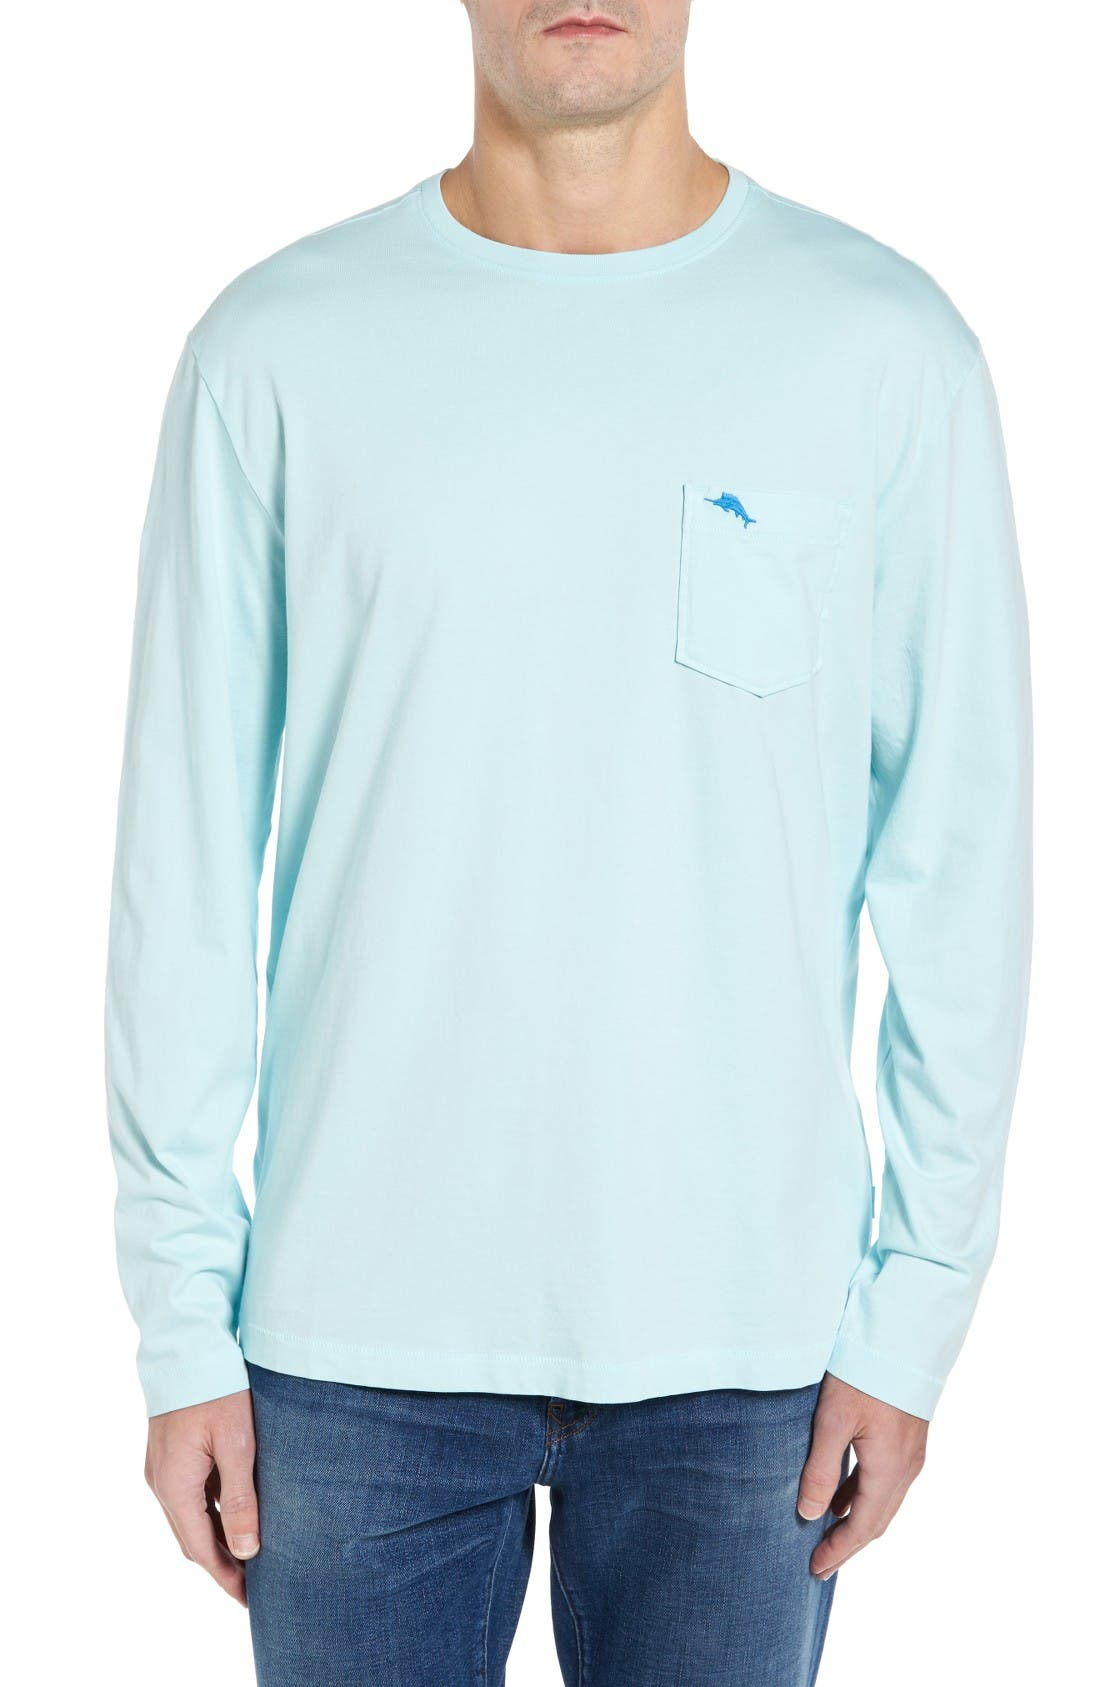 TOMMY BAHAMA Bali Skyline Long Sleeve Pima Cotton T-Shirt